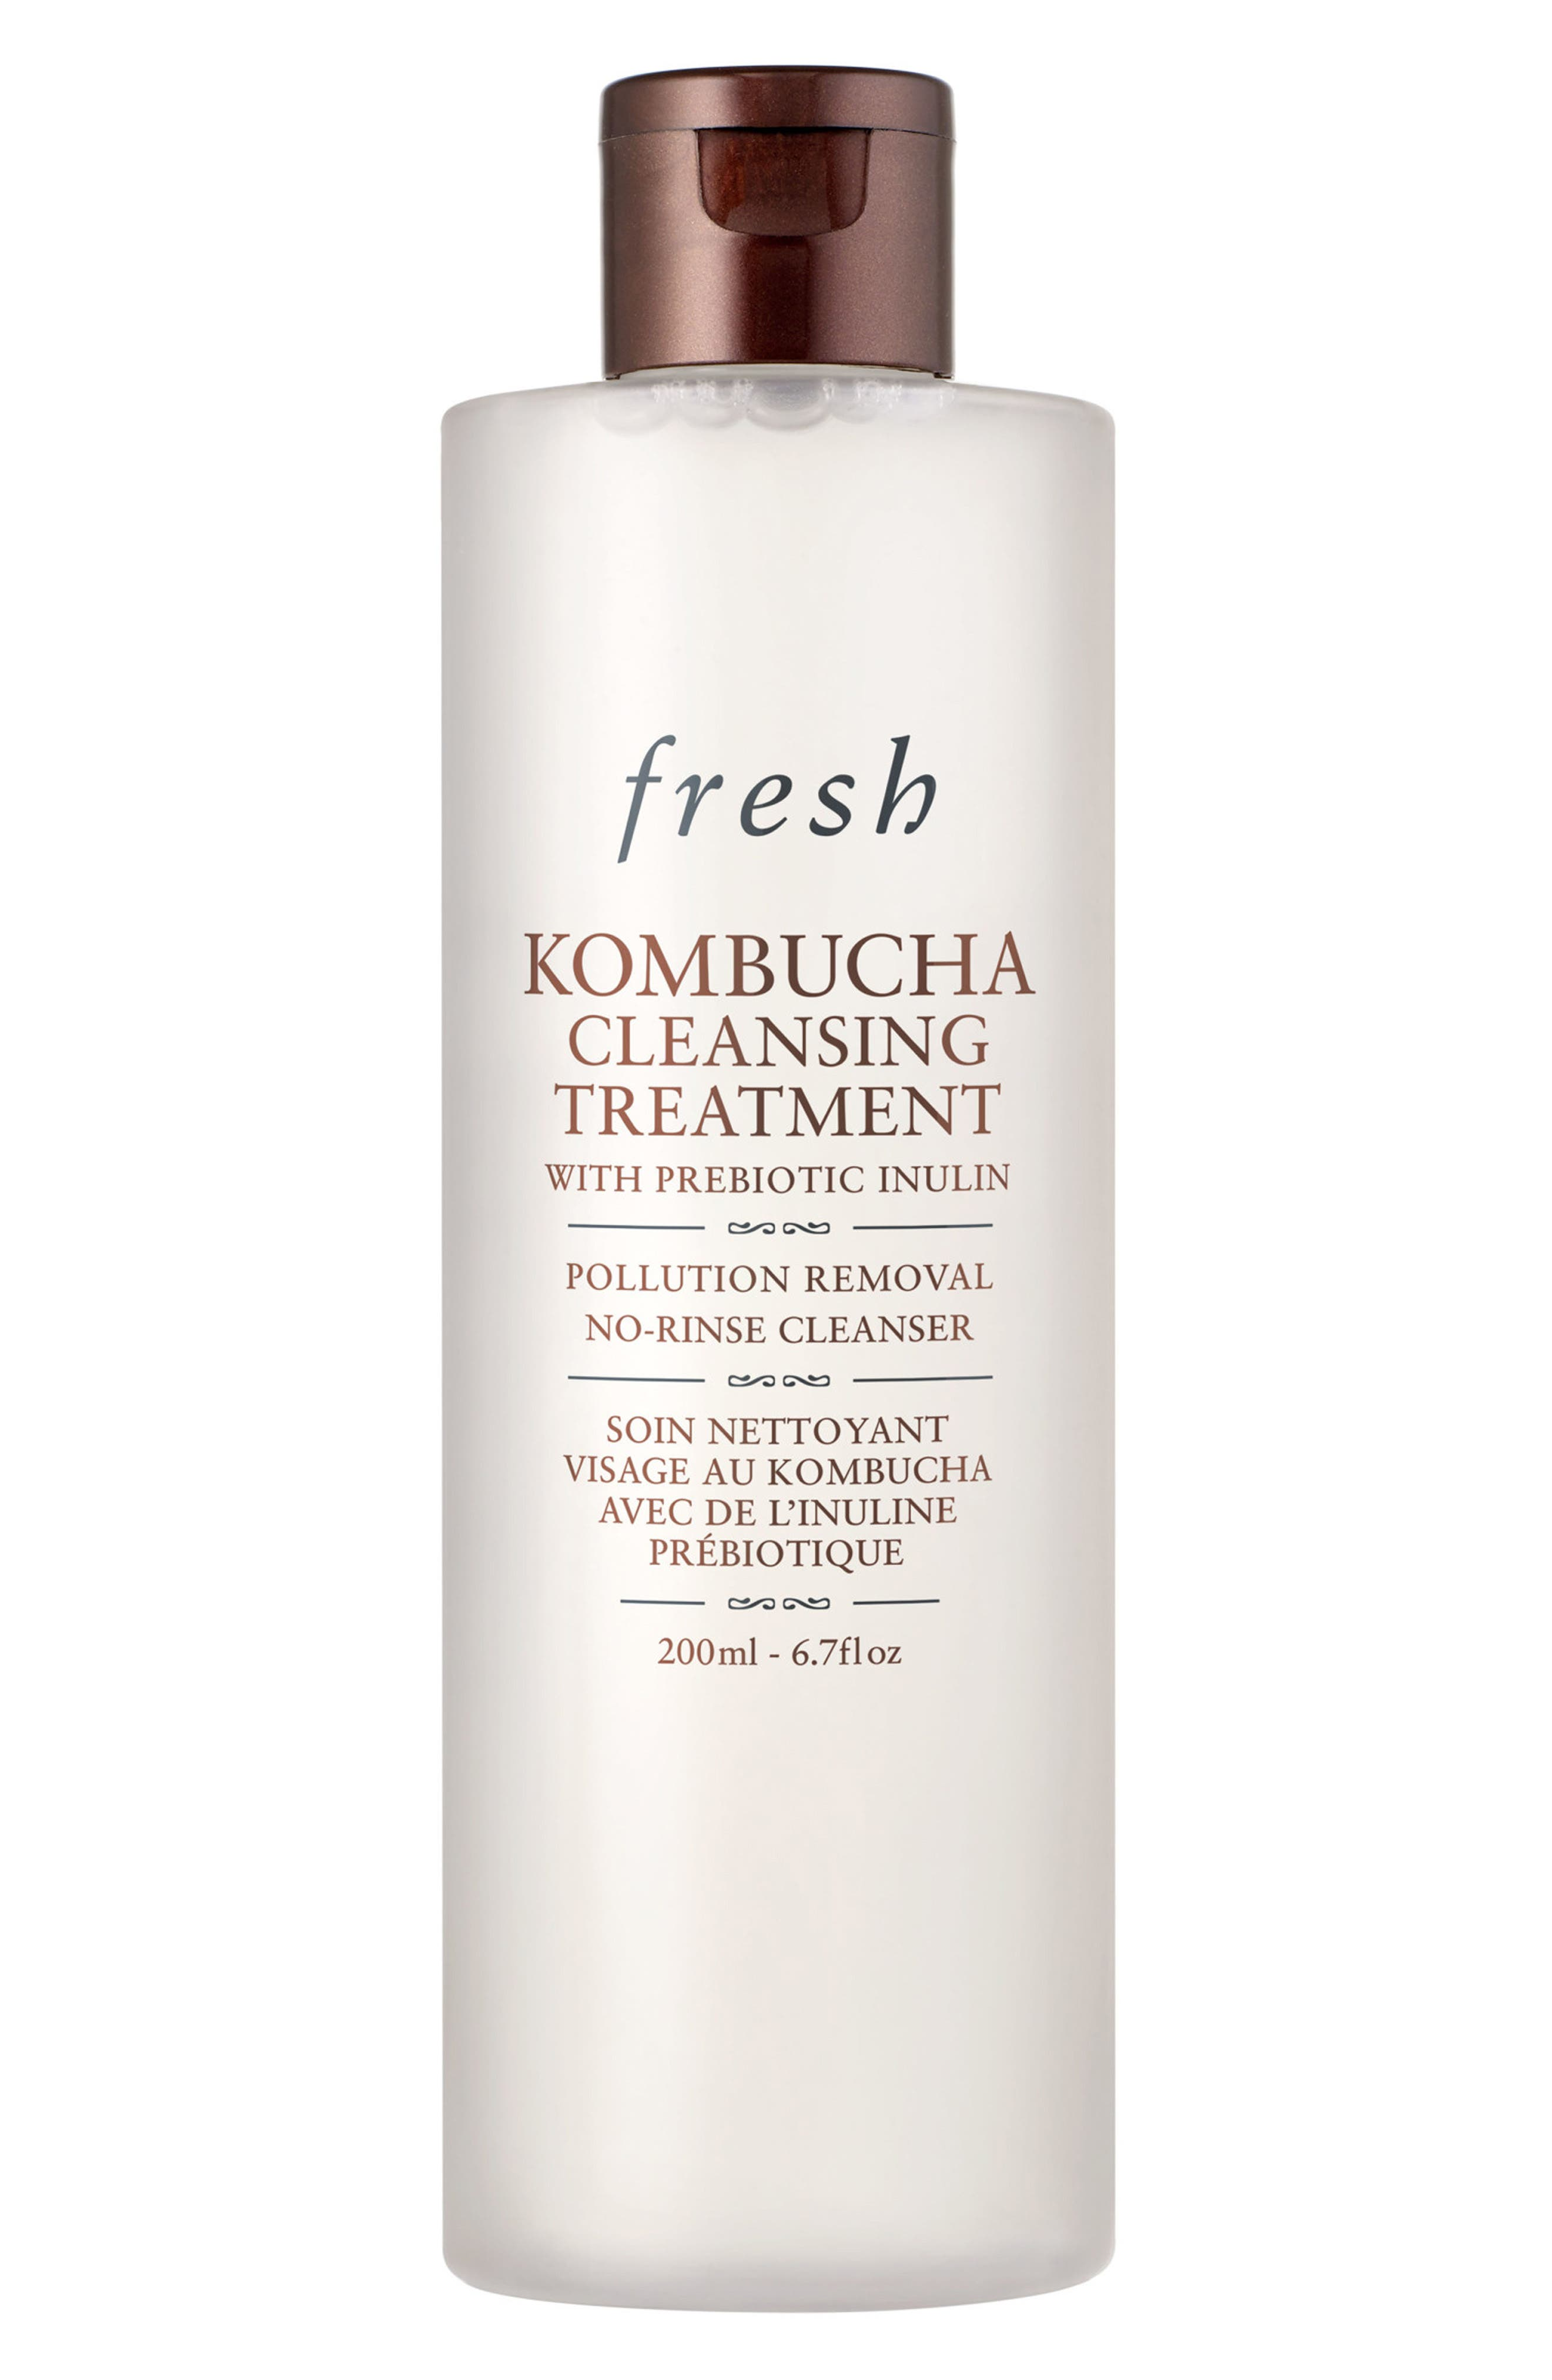 Kombucha Cleansing Treatment One-Step Cleanser with Prebiotic Inulin | Nordstrom